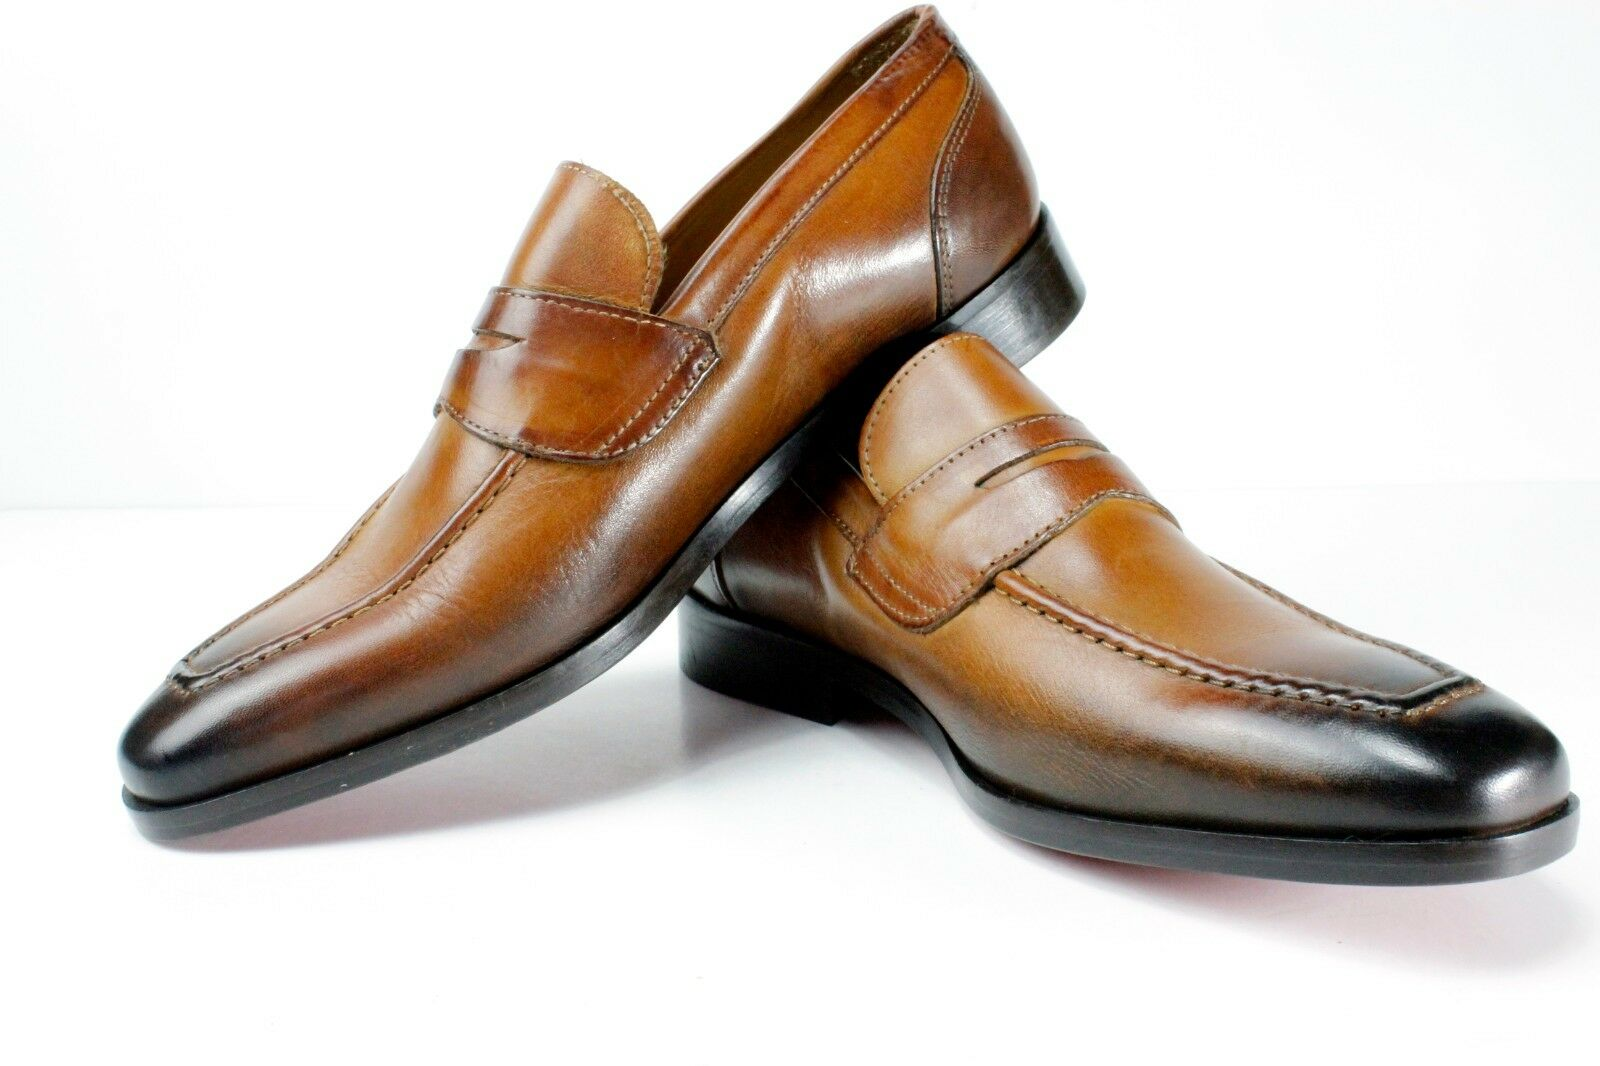 IVAN TROY Cognac Madou Handmade Italian Leather Dress shoes Loafers Office shoes